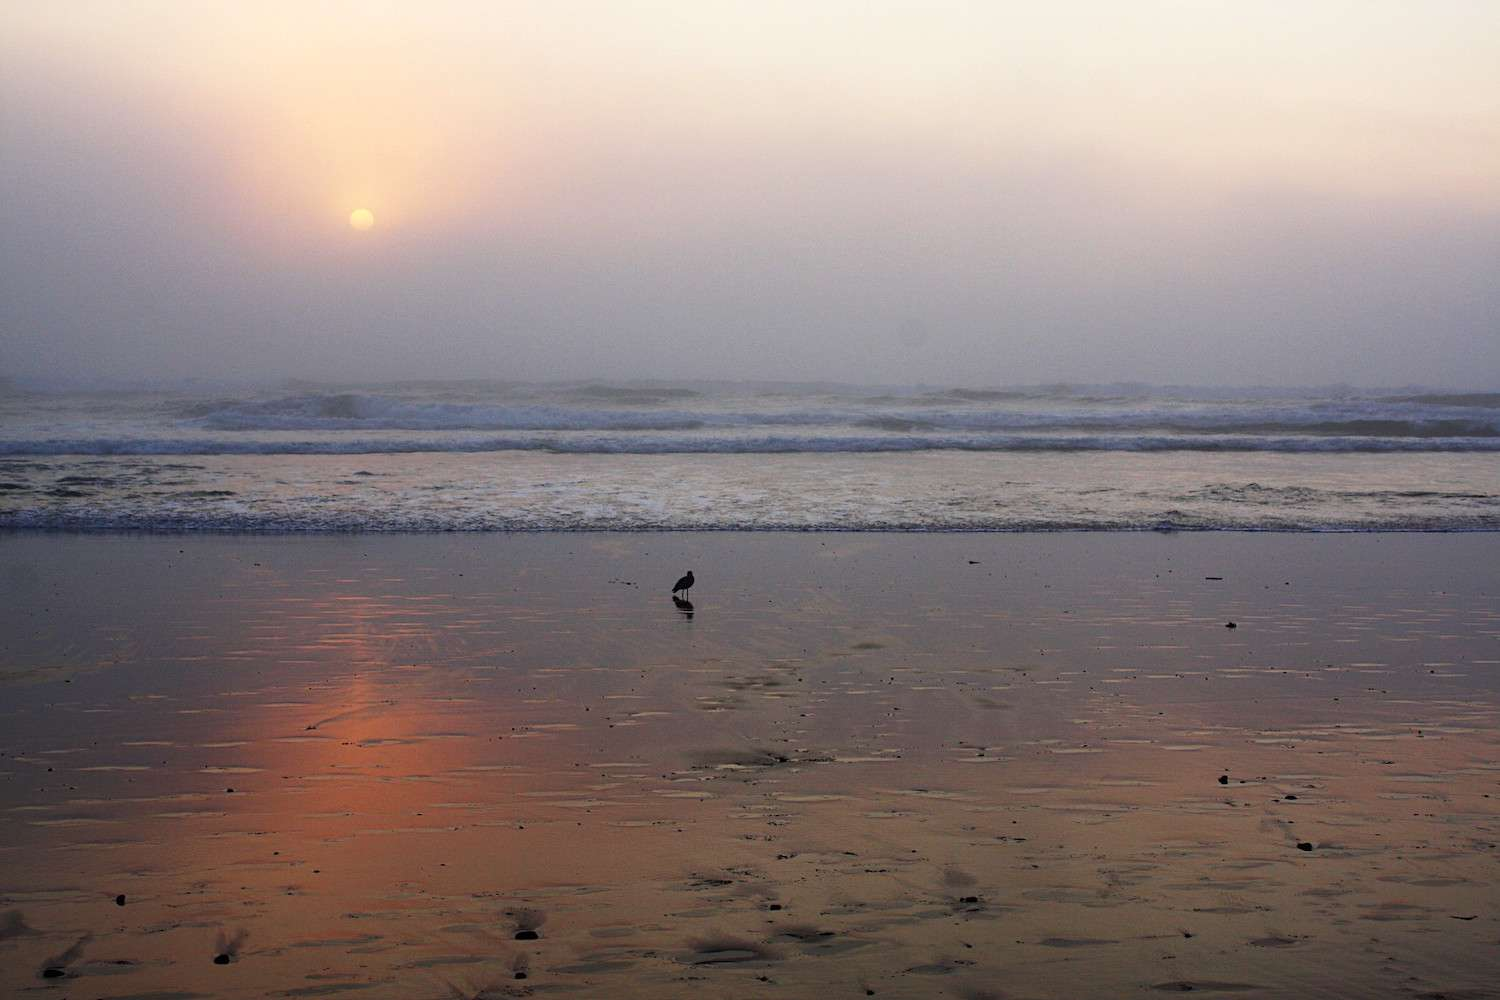 The setting sun reflects onto the thin layer of water covering the sand on a beach in Lincoln City, Oregon